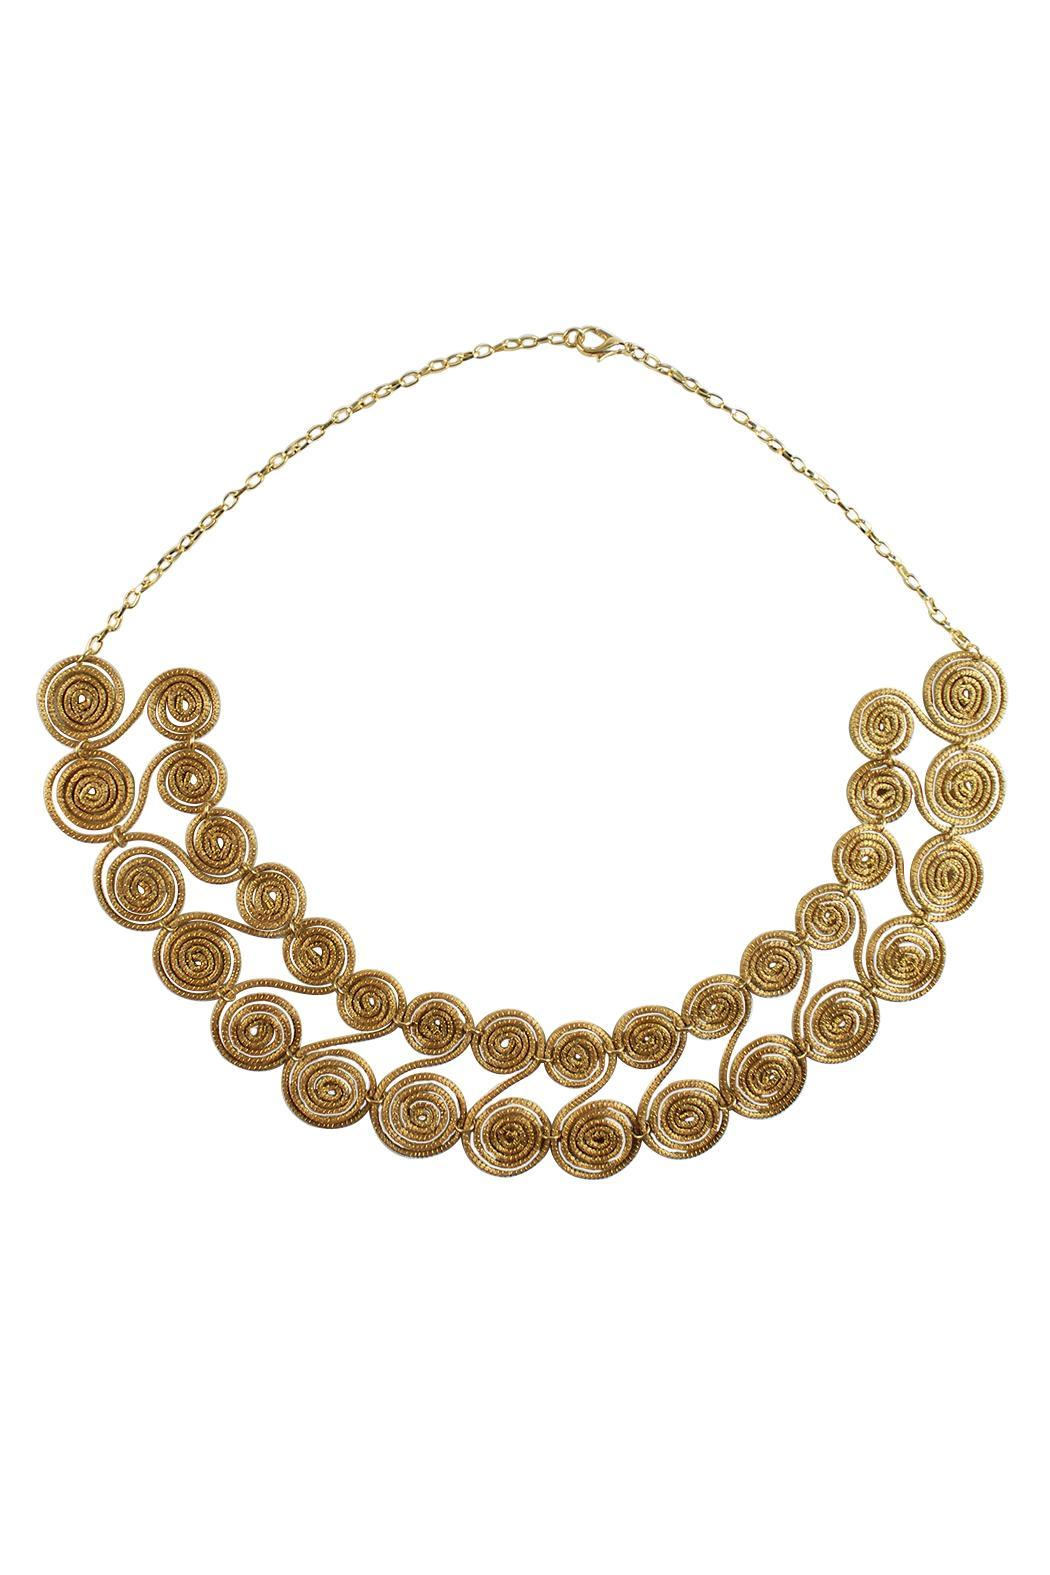 Linda de Taxco Vegetable Gold Necklace - Main Image